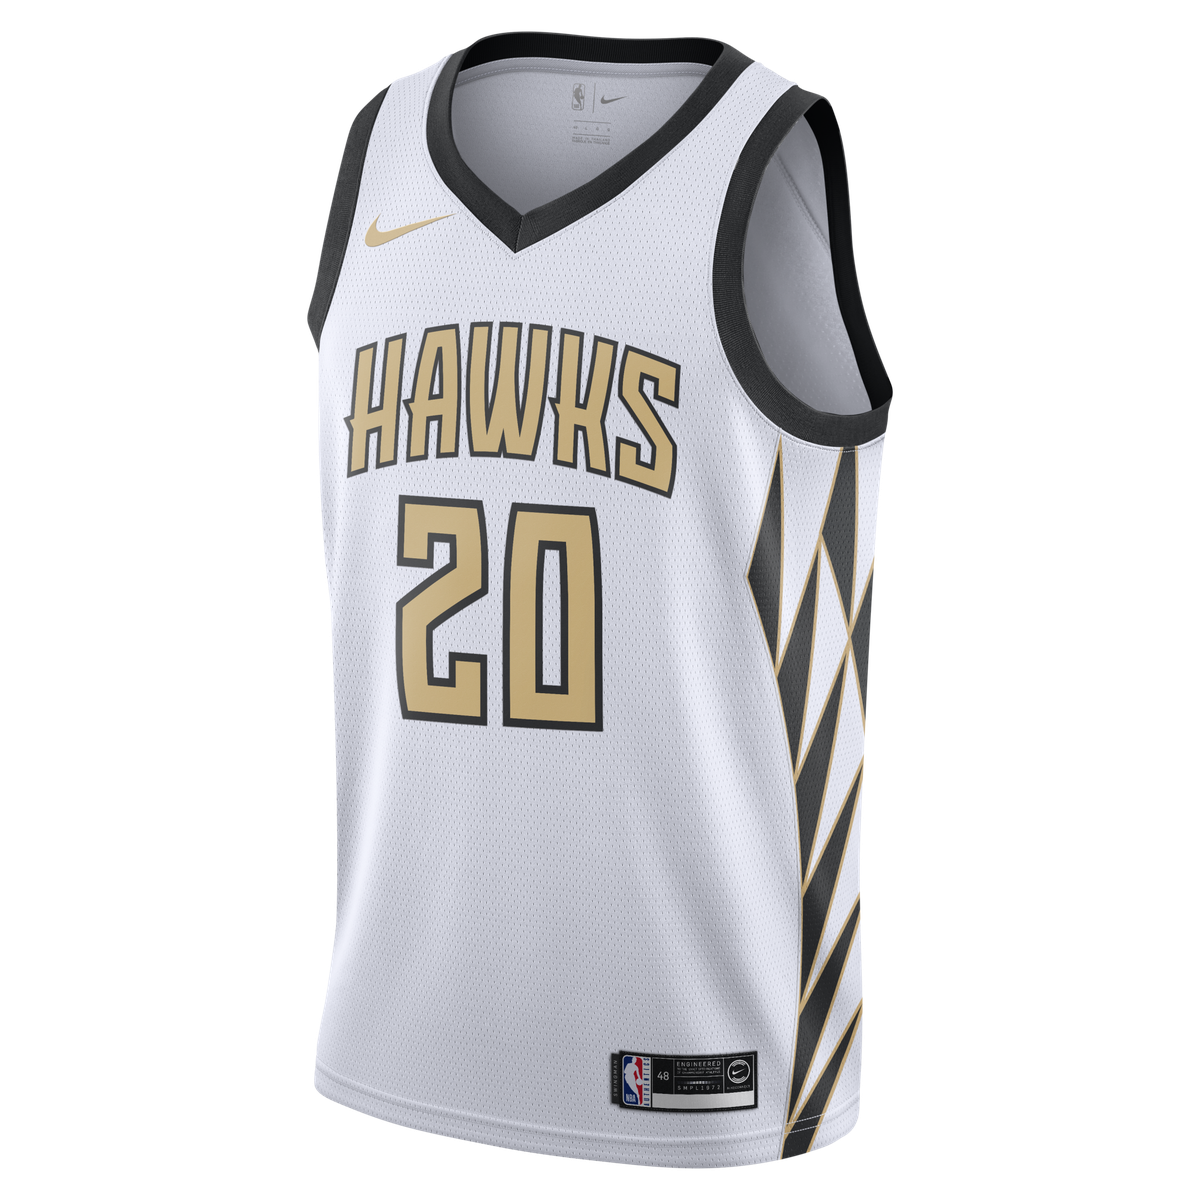 0b9239d19e2 John Collins Nike Swingman Jersey - City Edition for  109.99 Fanatics